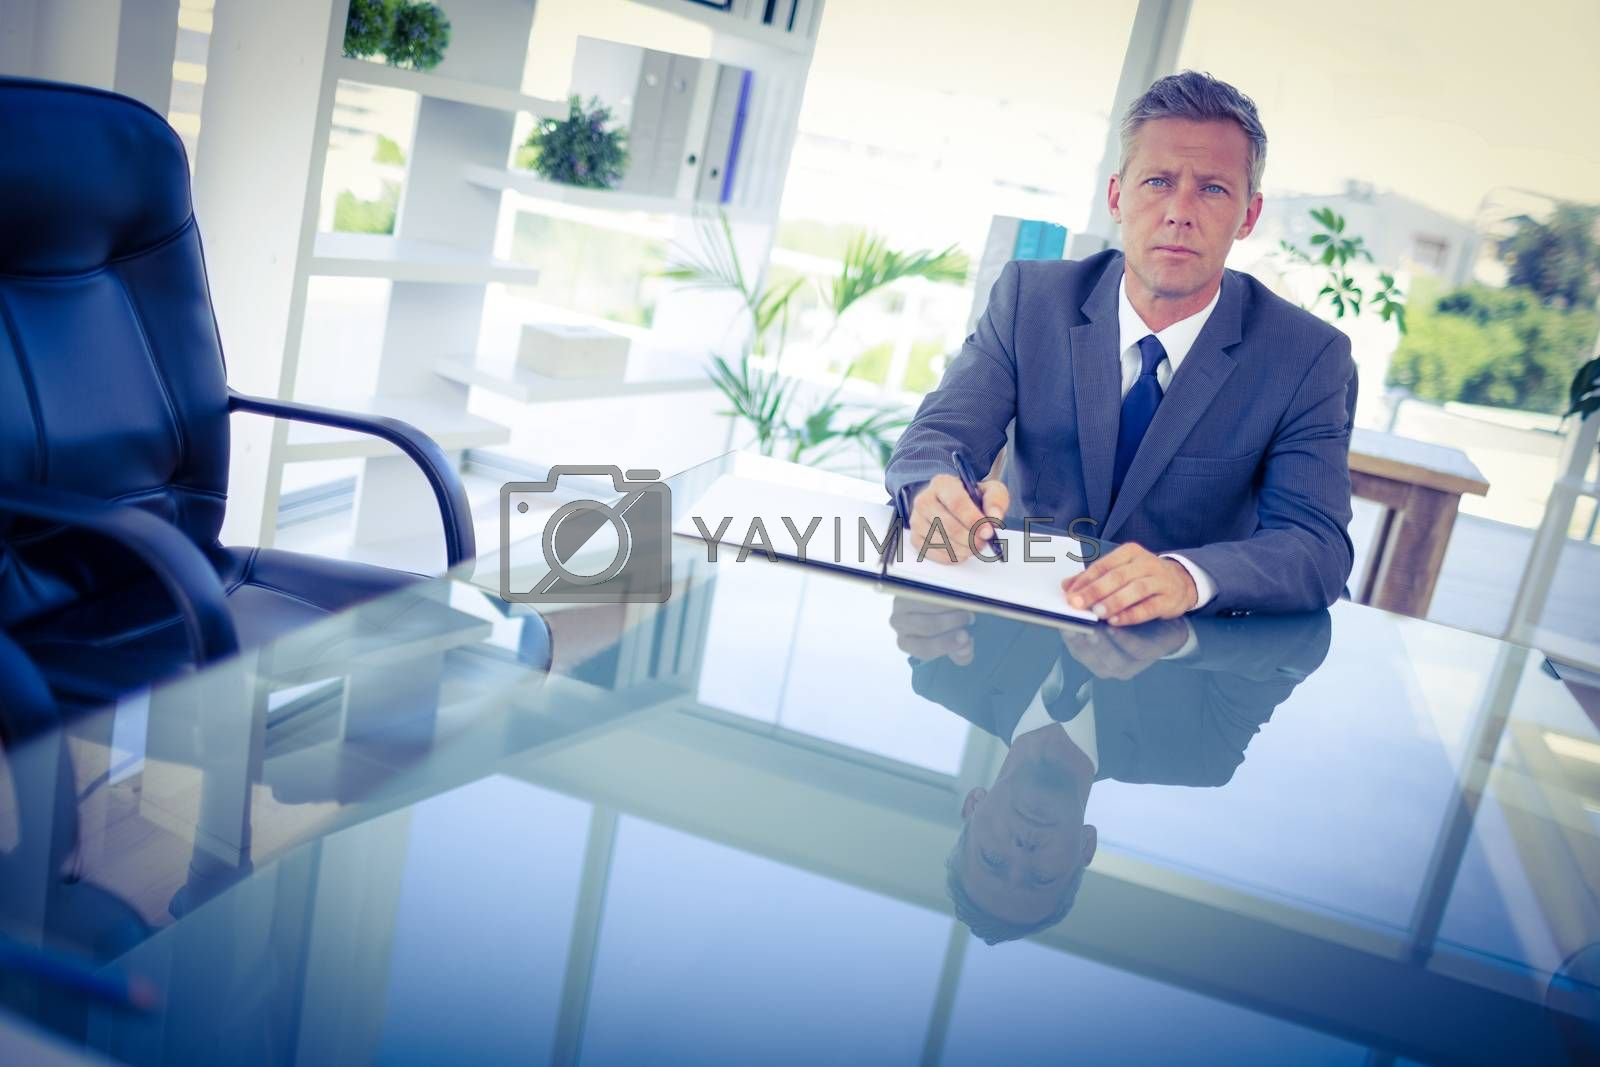 Royalty free image of Businessman writing on clipboard and looking at camera  by Wavebreakmedia